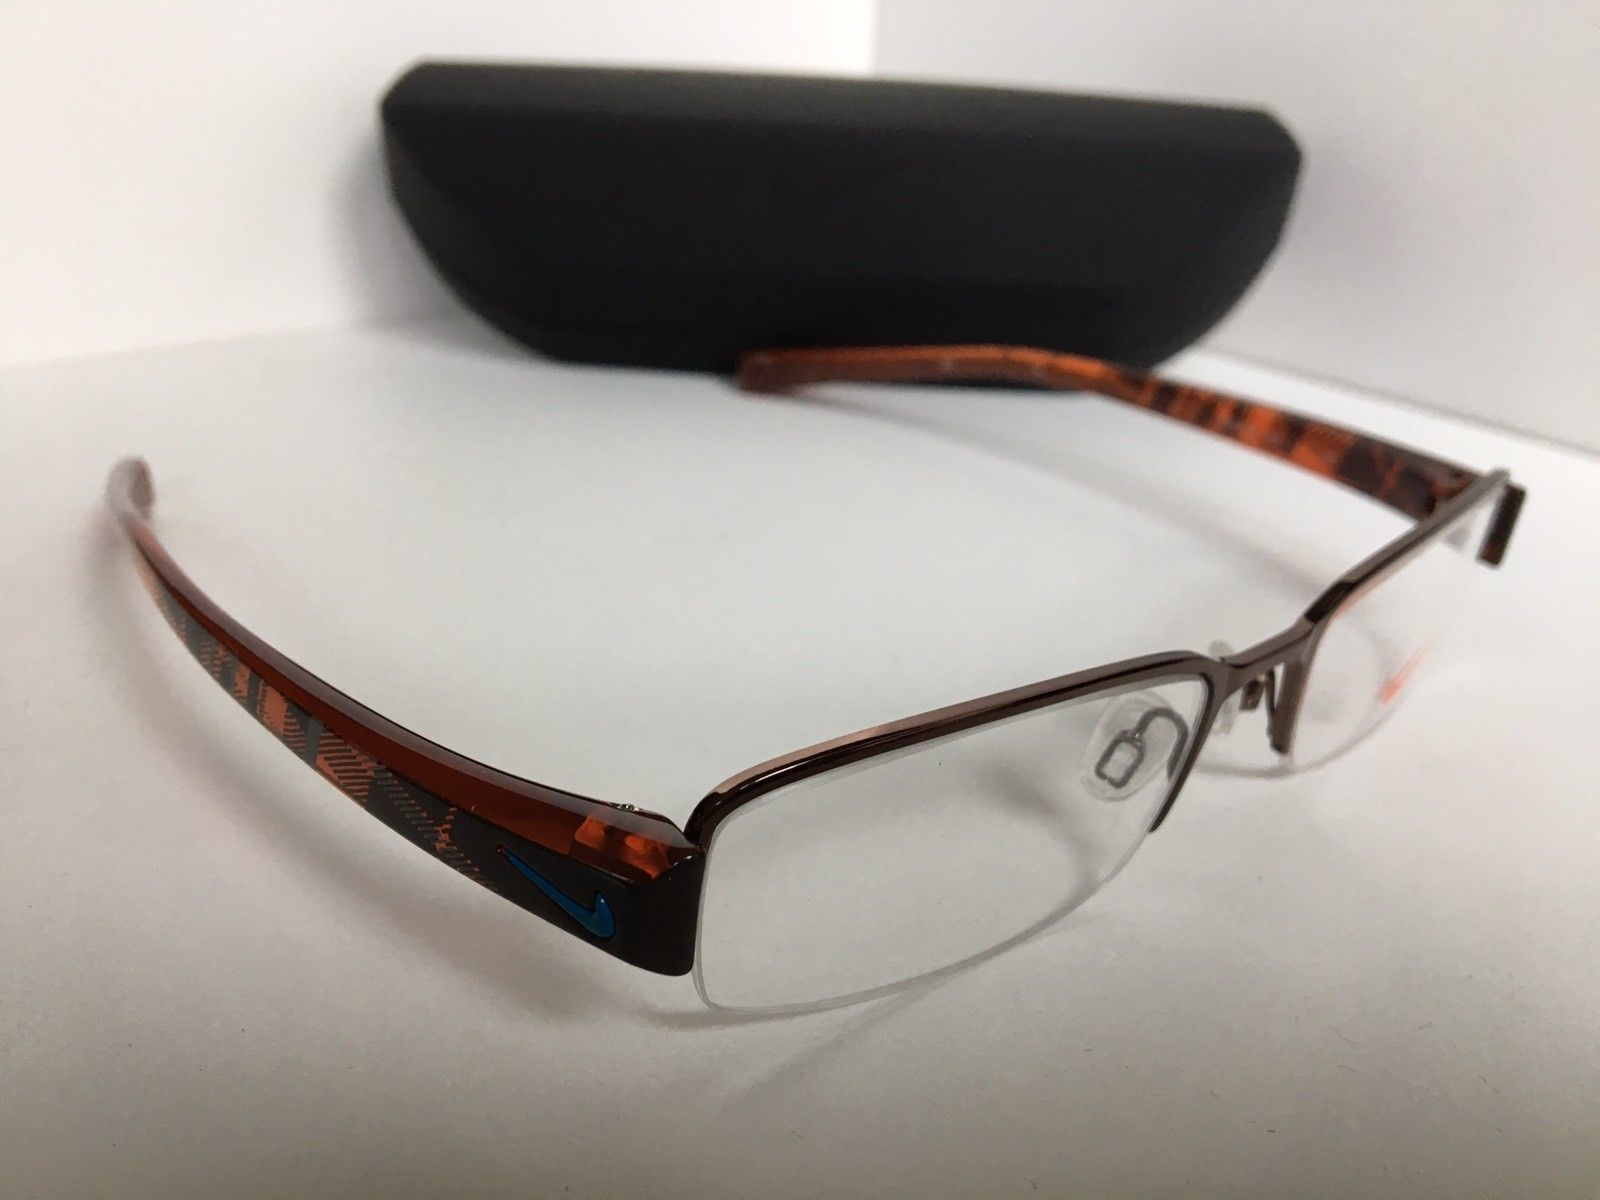 New Nike NK 8074 206 51mm Semi-Rimless Shiny Bronze Eyeglasses Frame